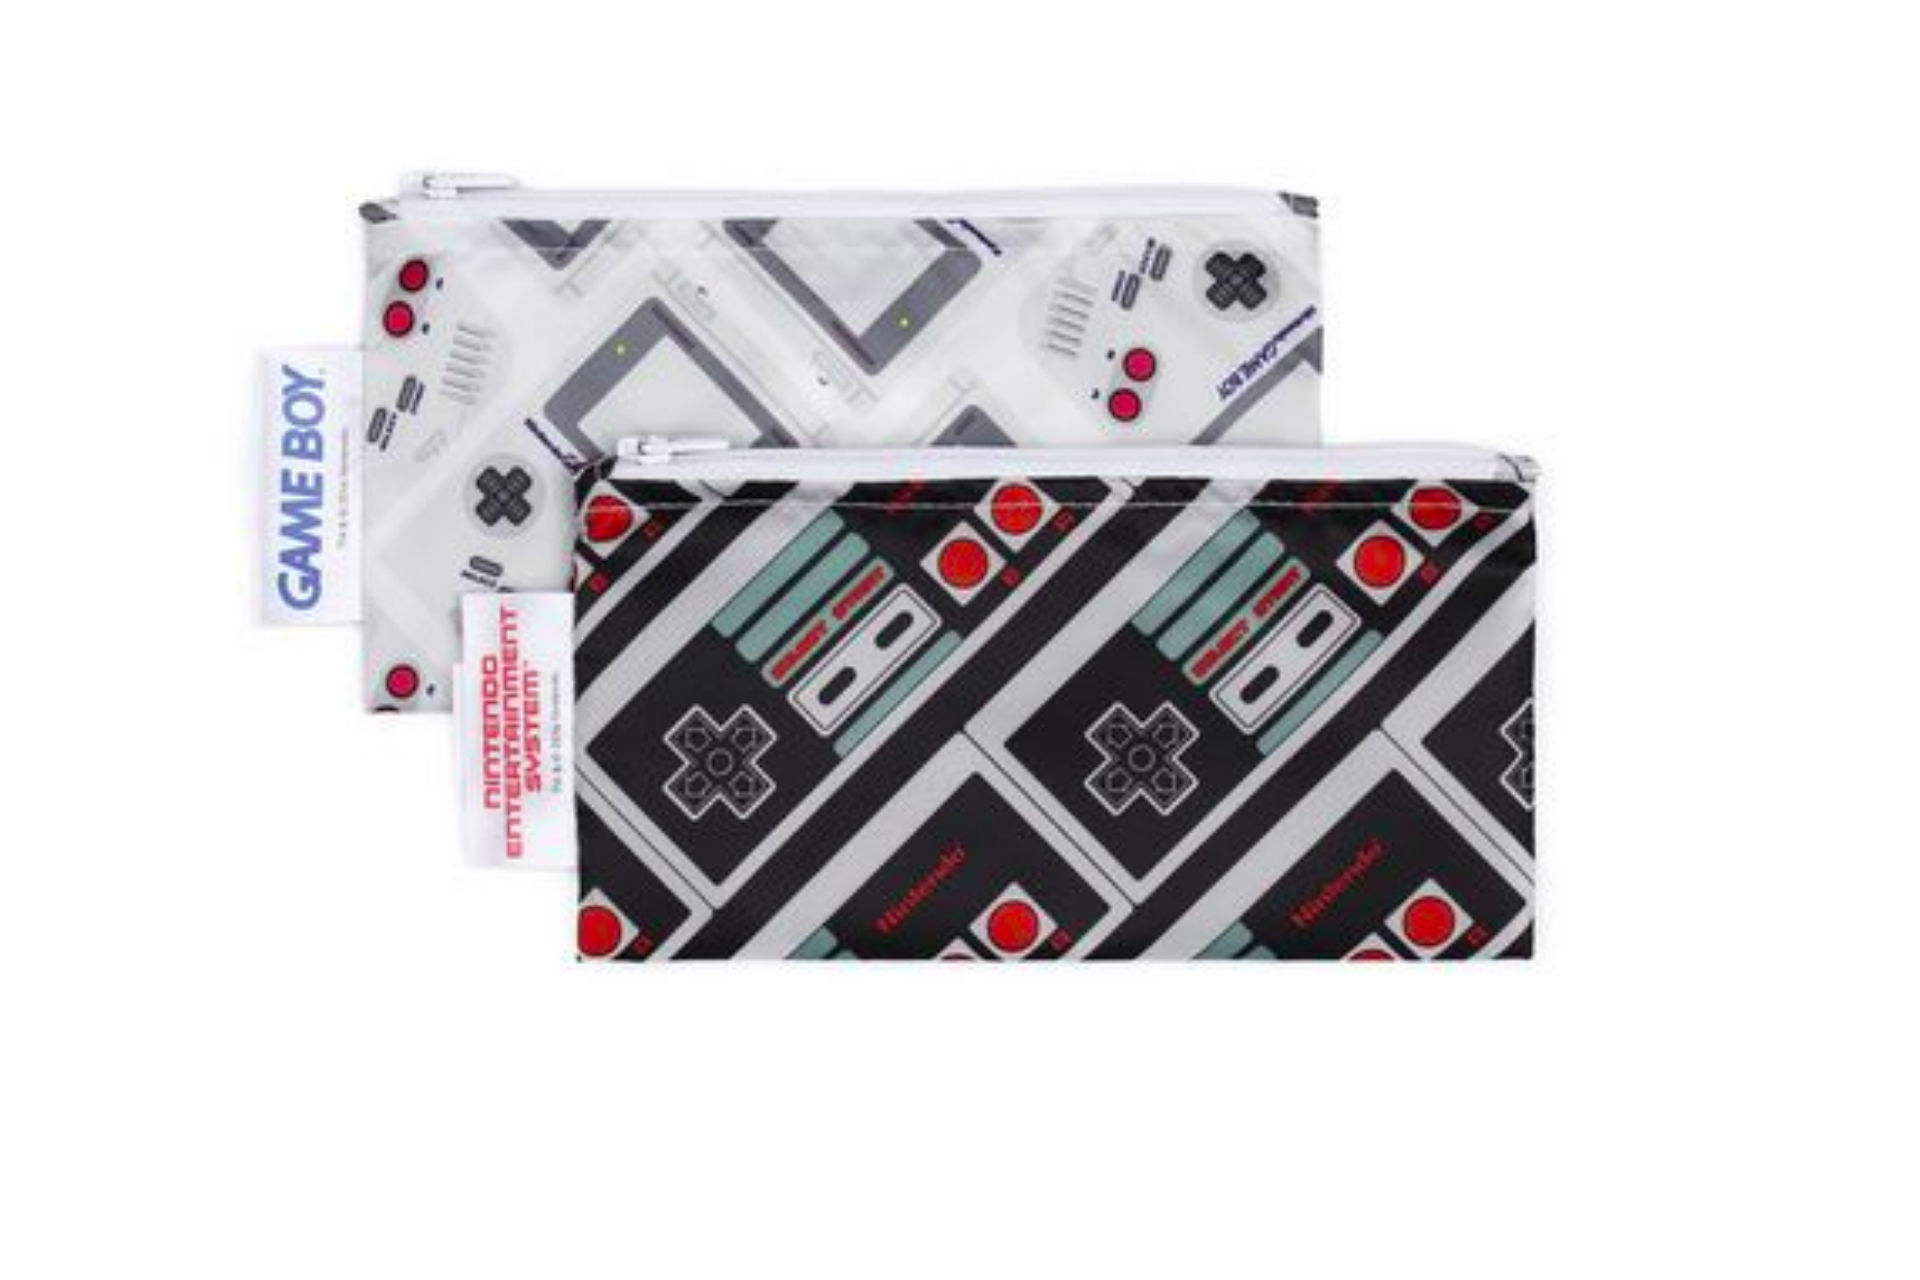 cloth snack bags in nintendo pattern